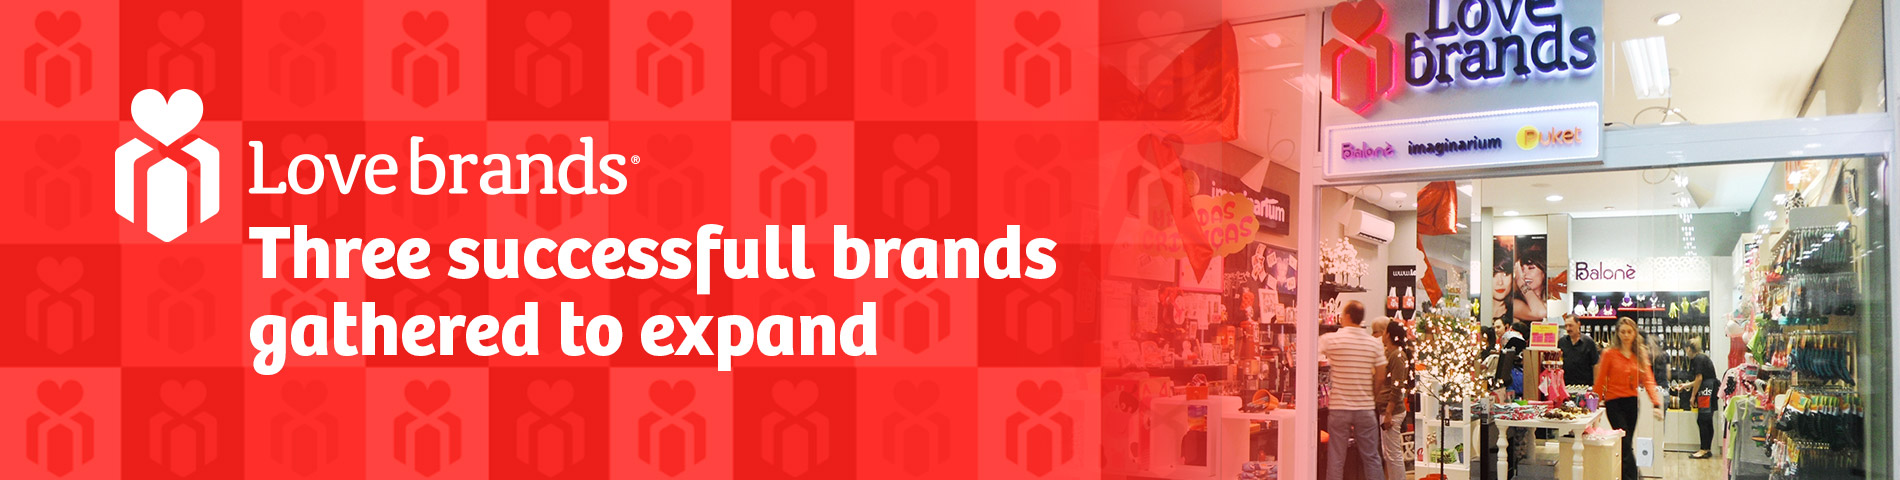 Love Brands - Three successfull brands gathered to expand